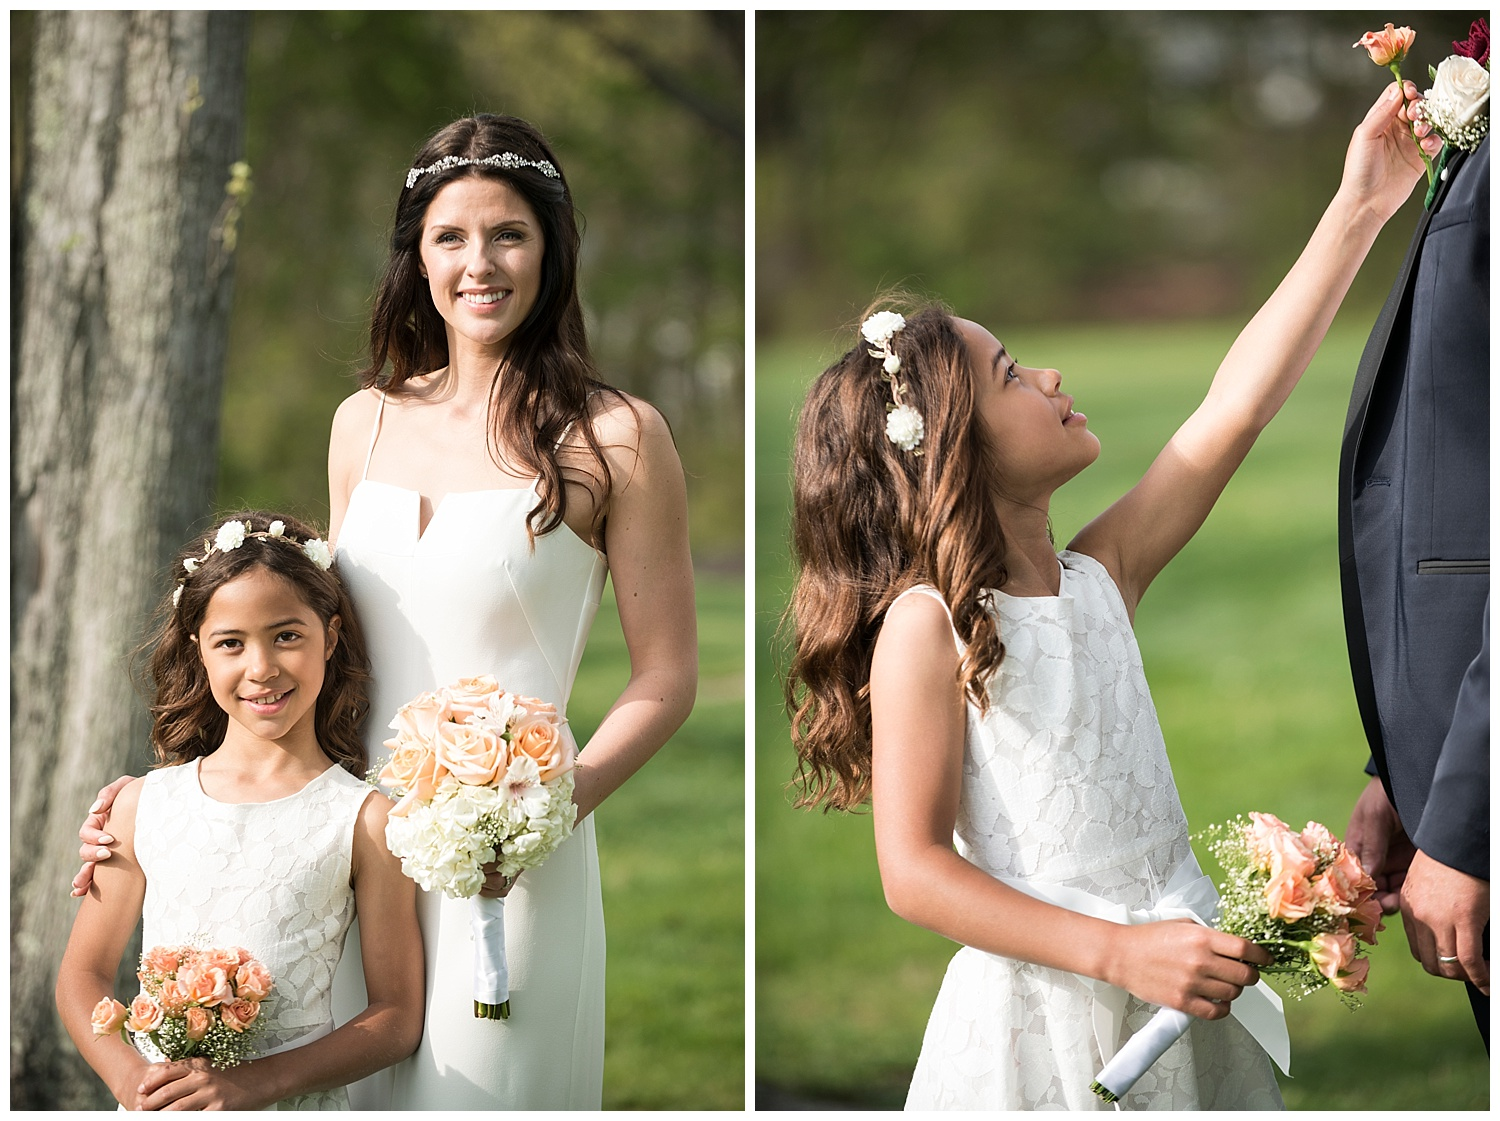 Beautiful Bride & Daughter | Intimate Wedding Photographer | New York State Wedding Photographer | Farm Wedding Photographer | Apollo Fields Wedding Photojournalism